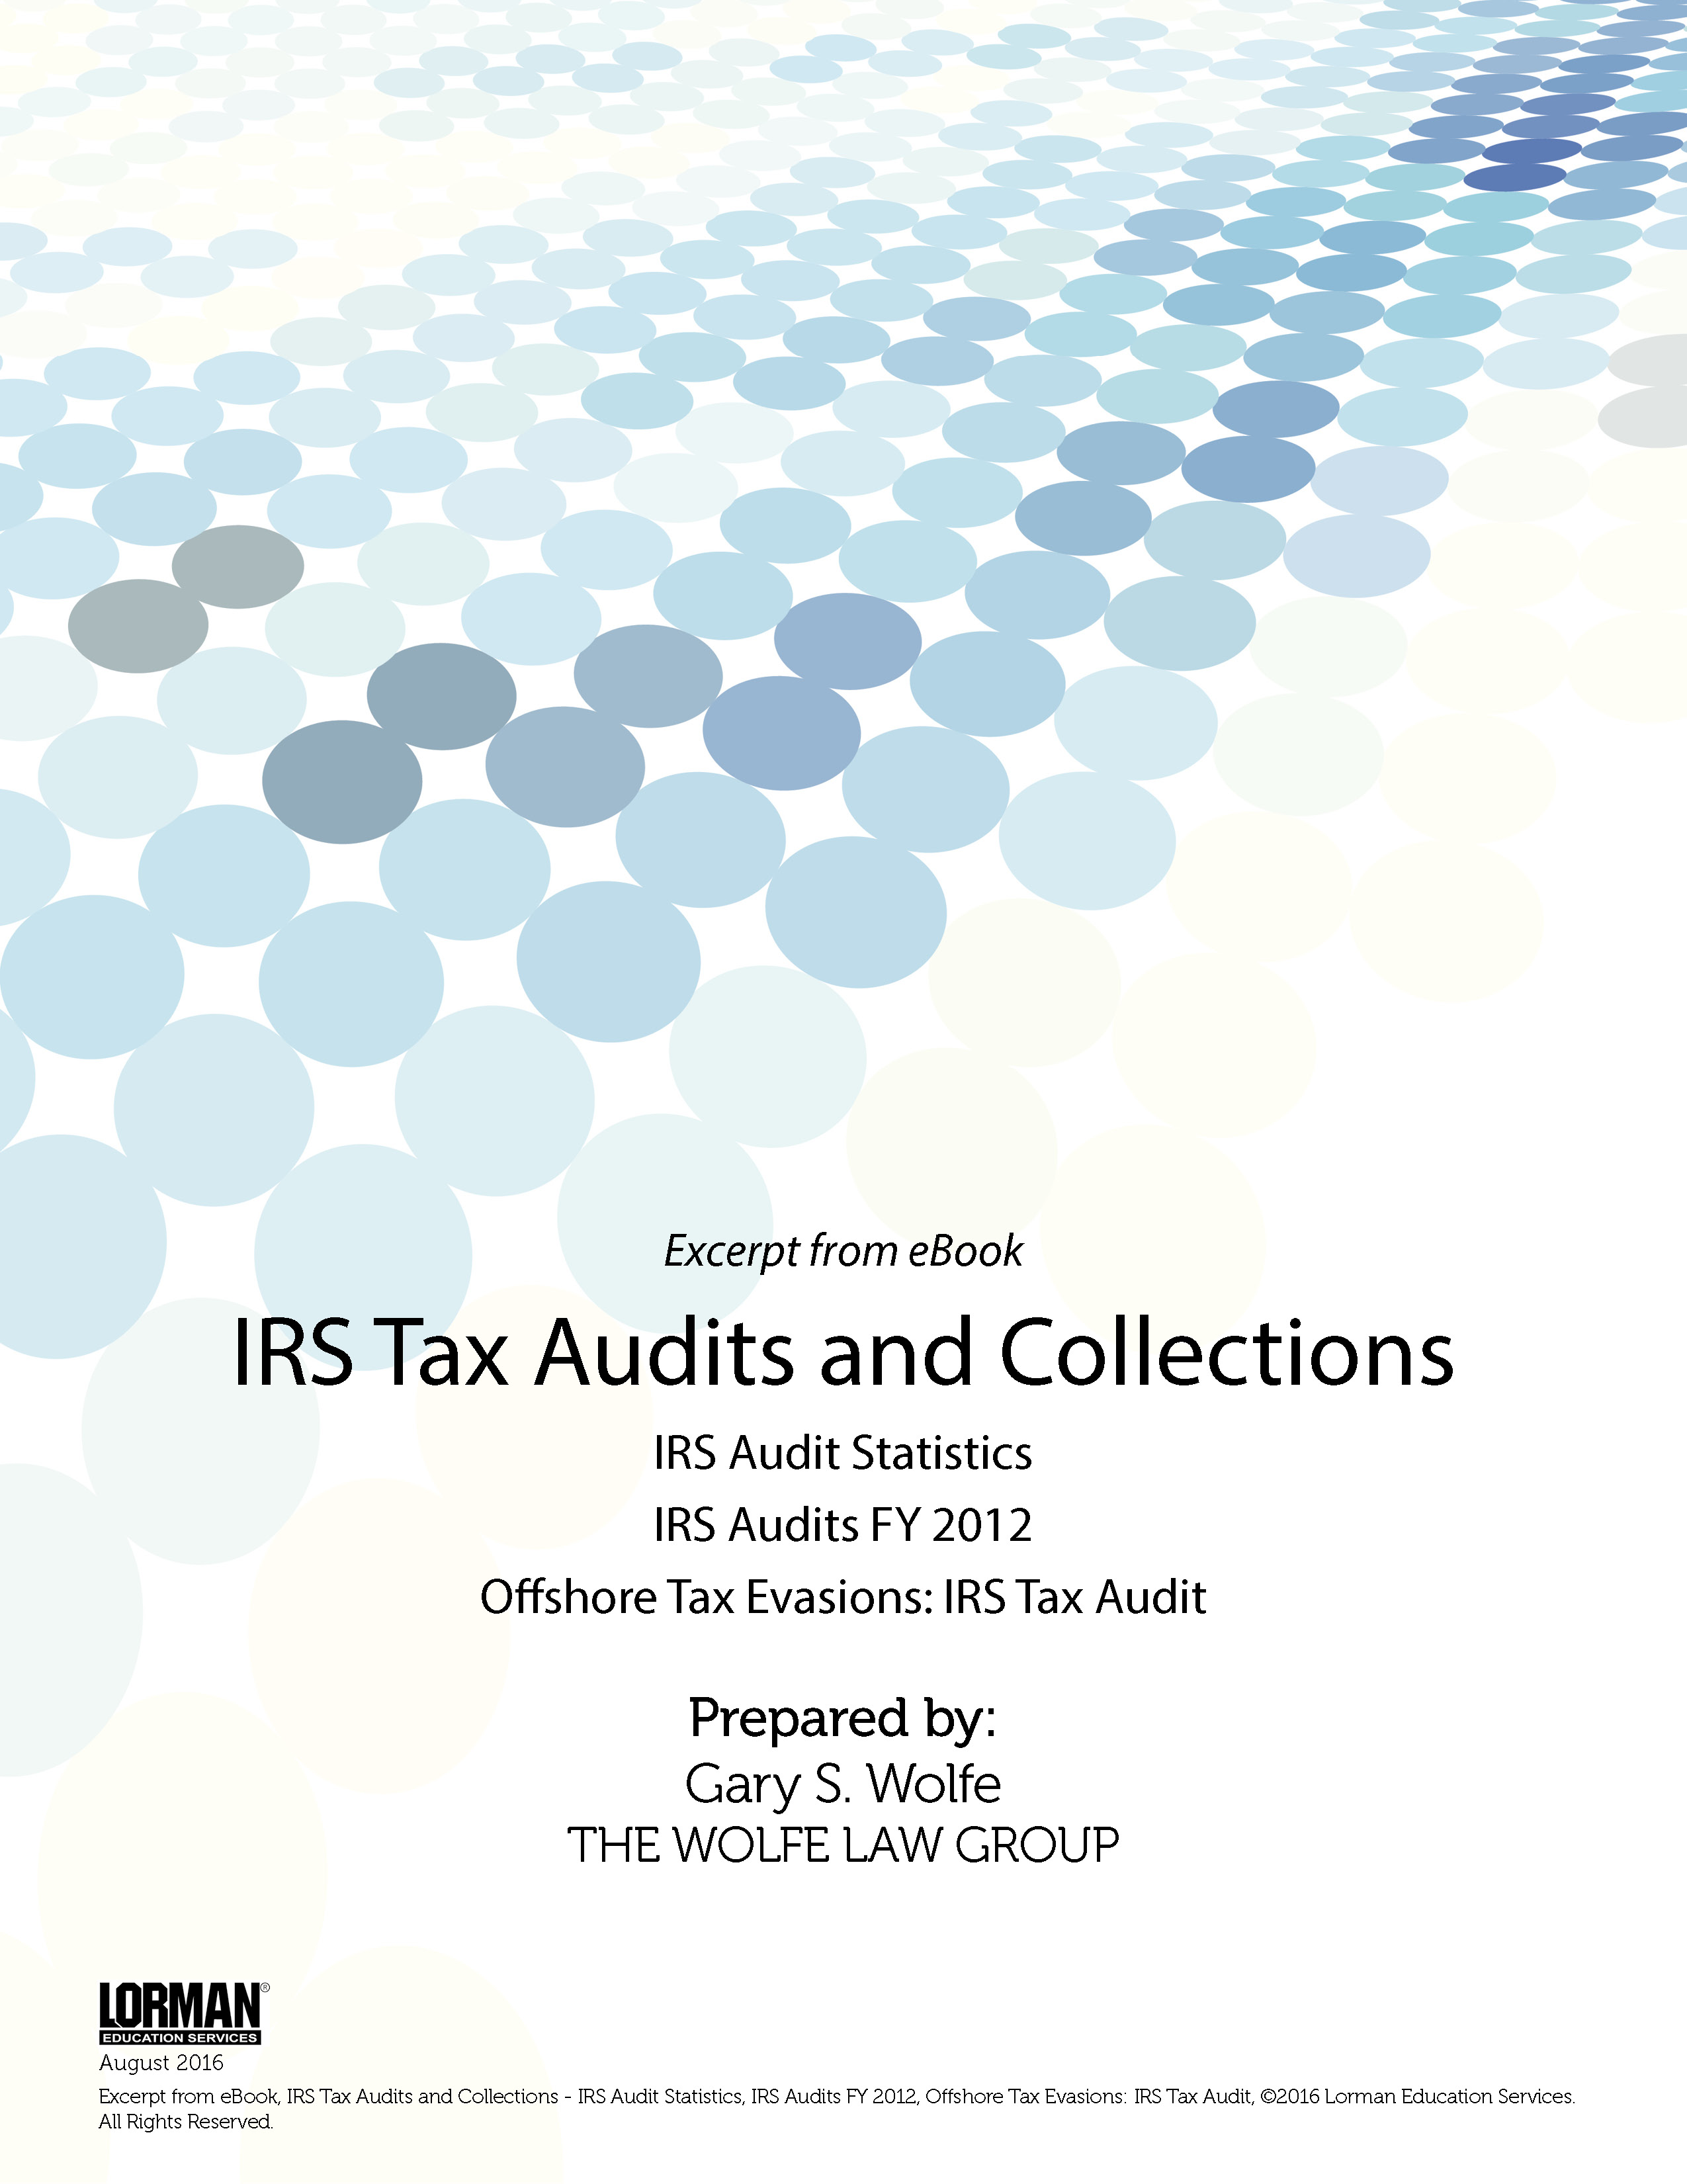 IRS Tax Audits and Collections: IRS Audit Statistics, IRS Audits FY 2012, Offshore Tax Evasions: IRS Tax Audit